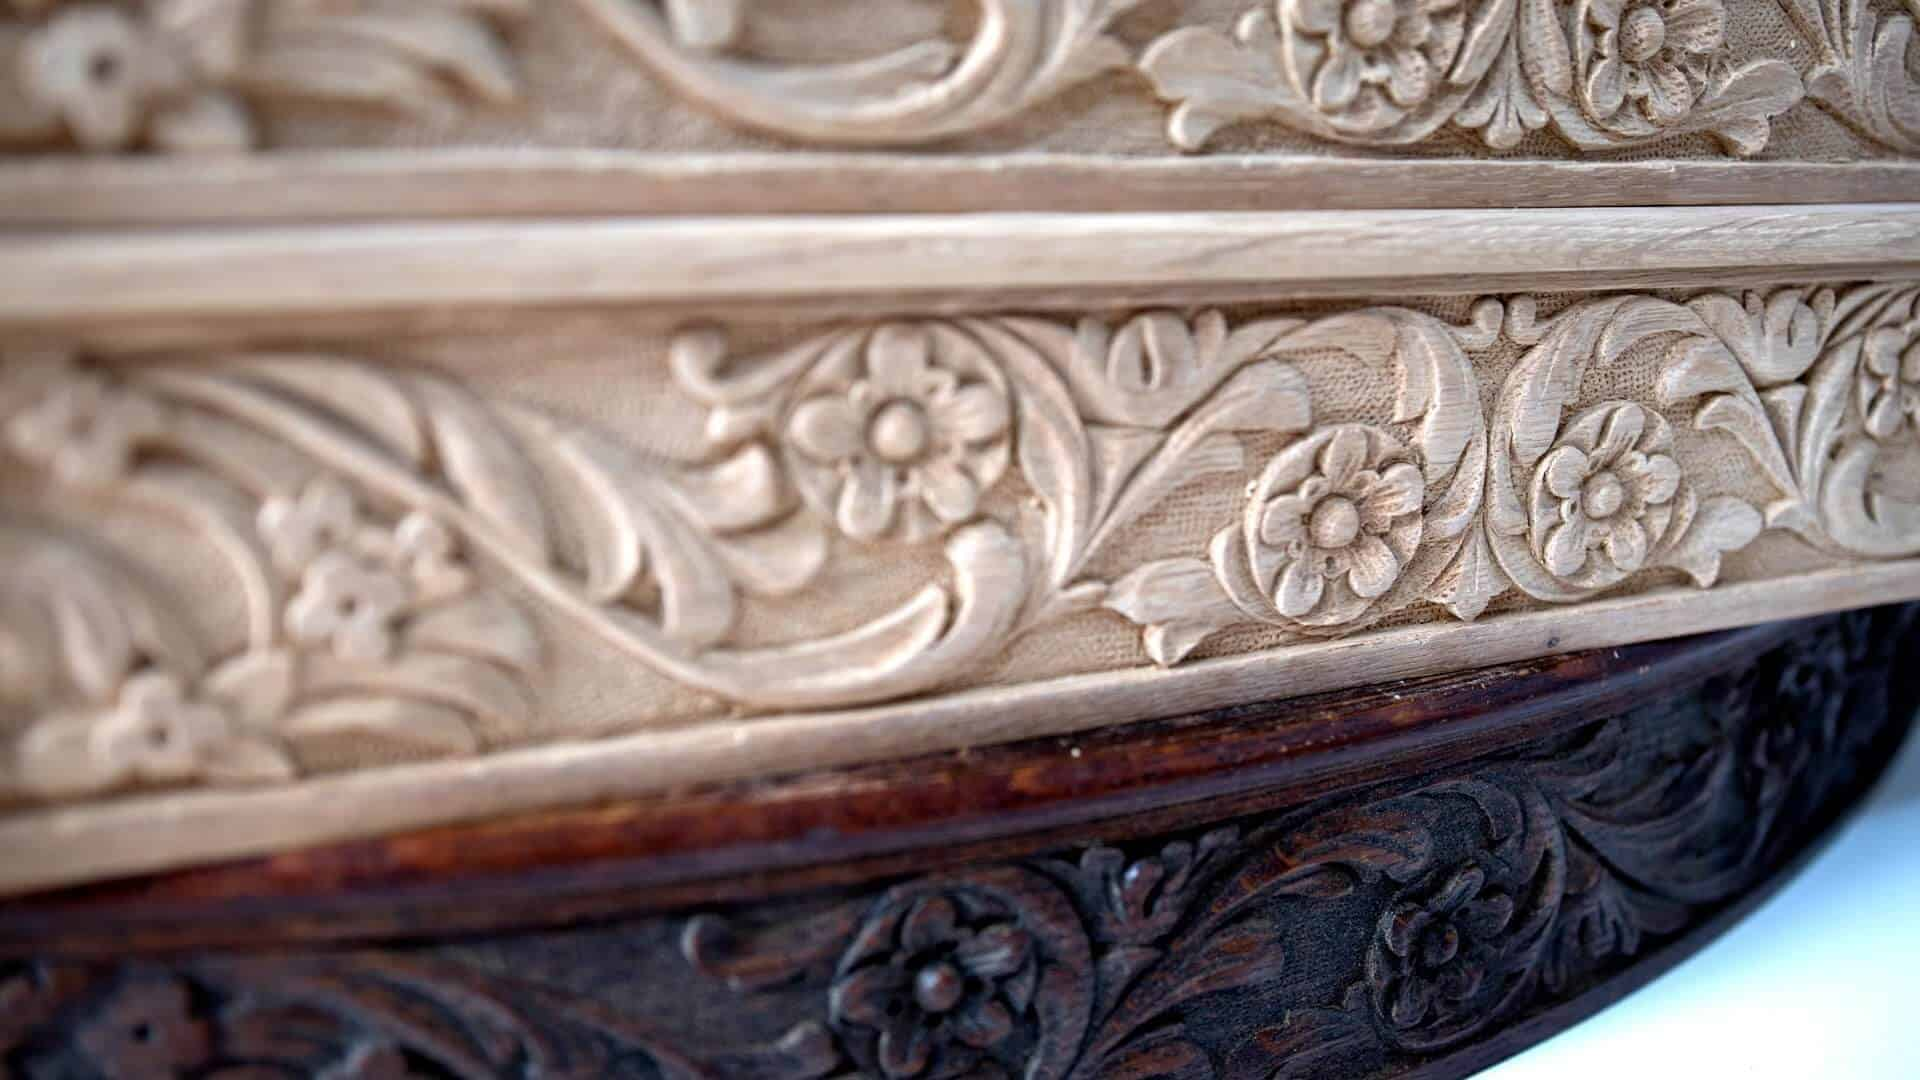 Woodcarving School | Carving Dining Table Apron | Furniture Carving | Decorative Wood Carving | https://schoolofwoodcarving.com